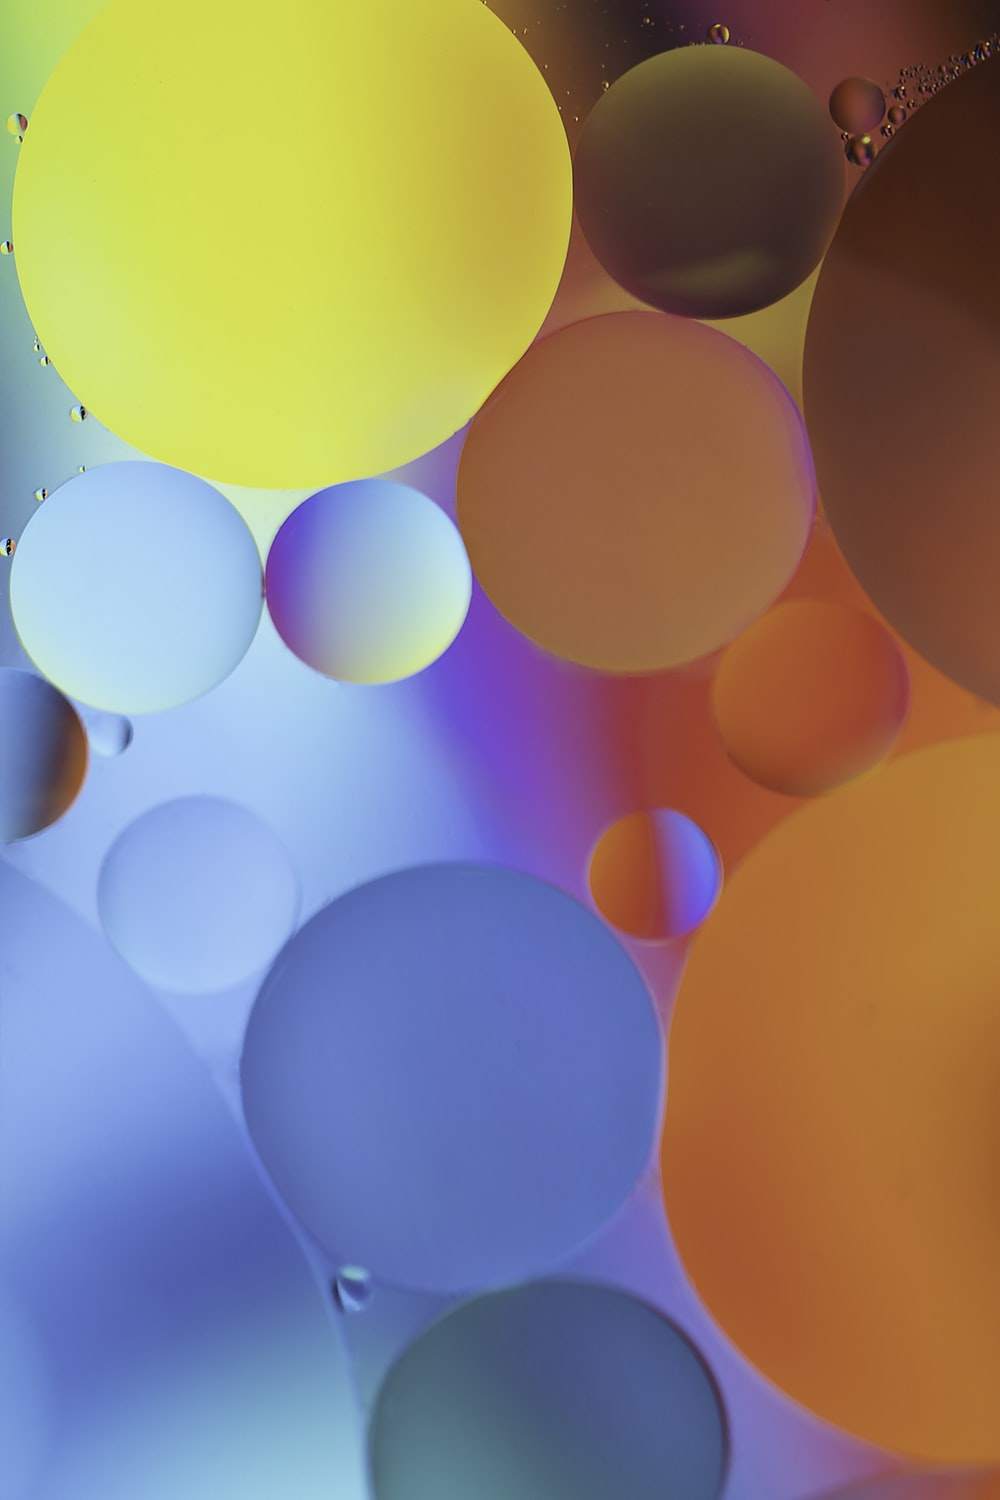 red and yellow balloons in close up photography